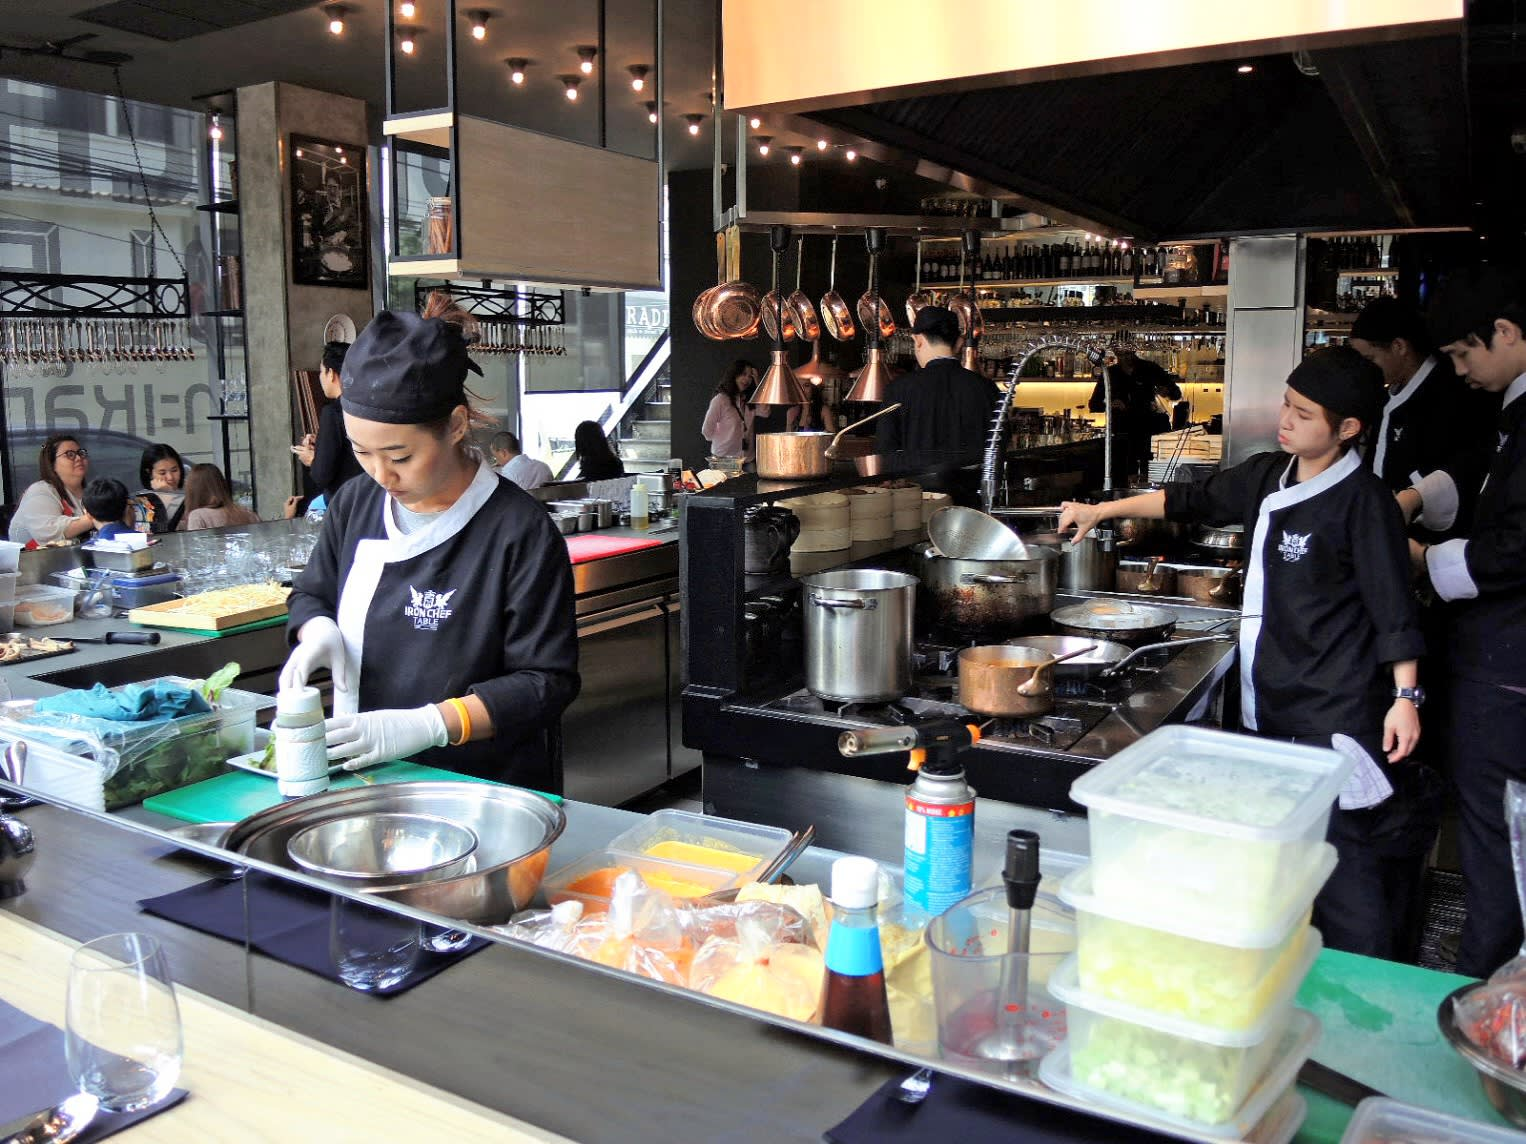 Iron Chef segues from TV to restaurant in Bangkok - Nikkei ...